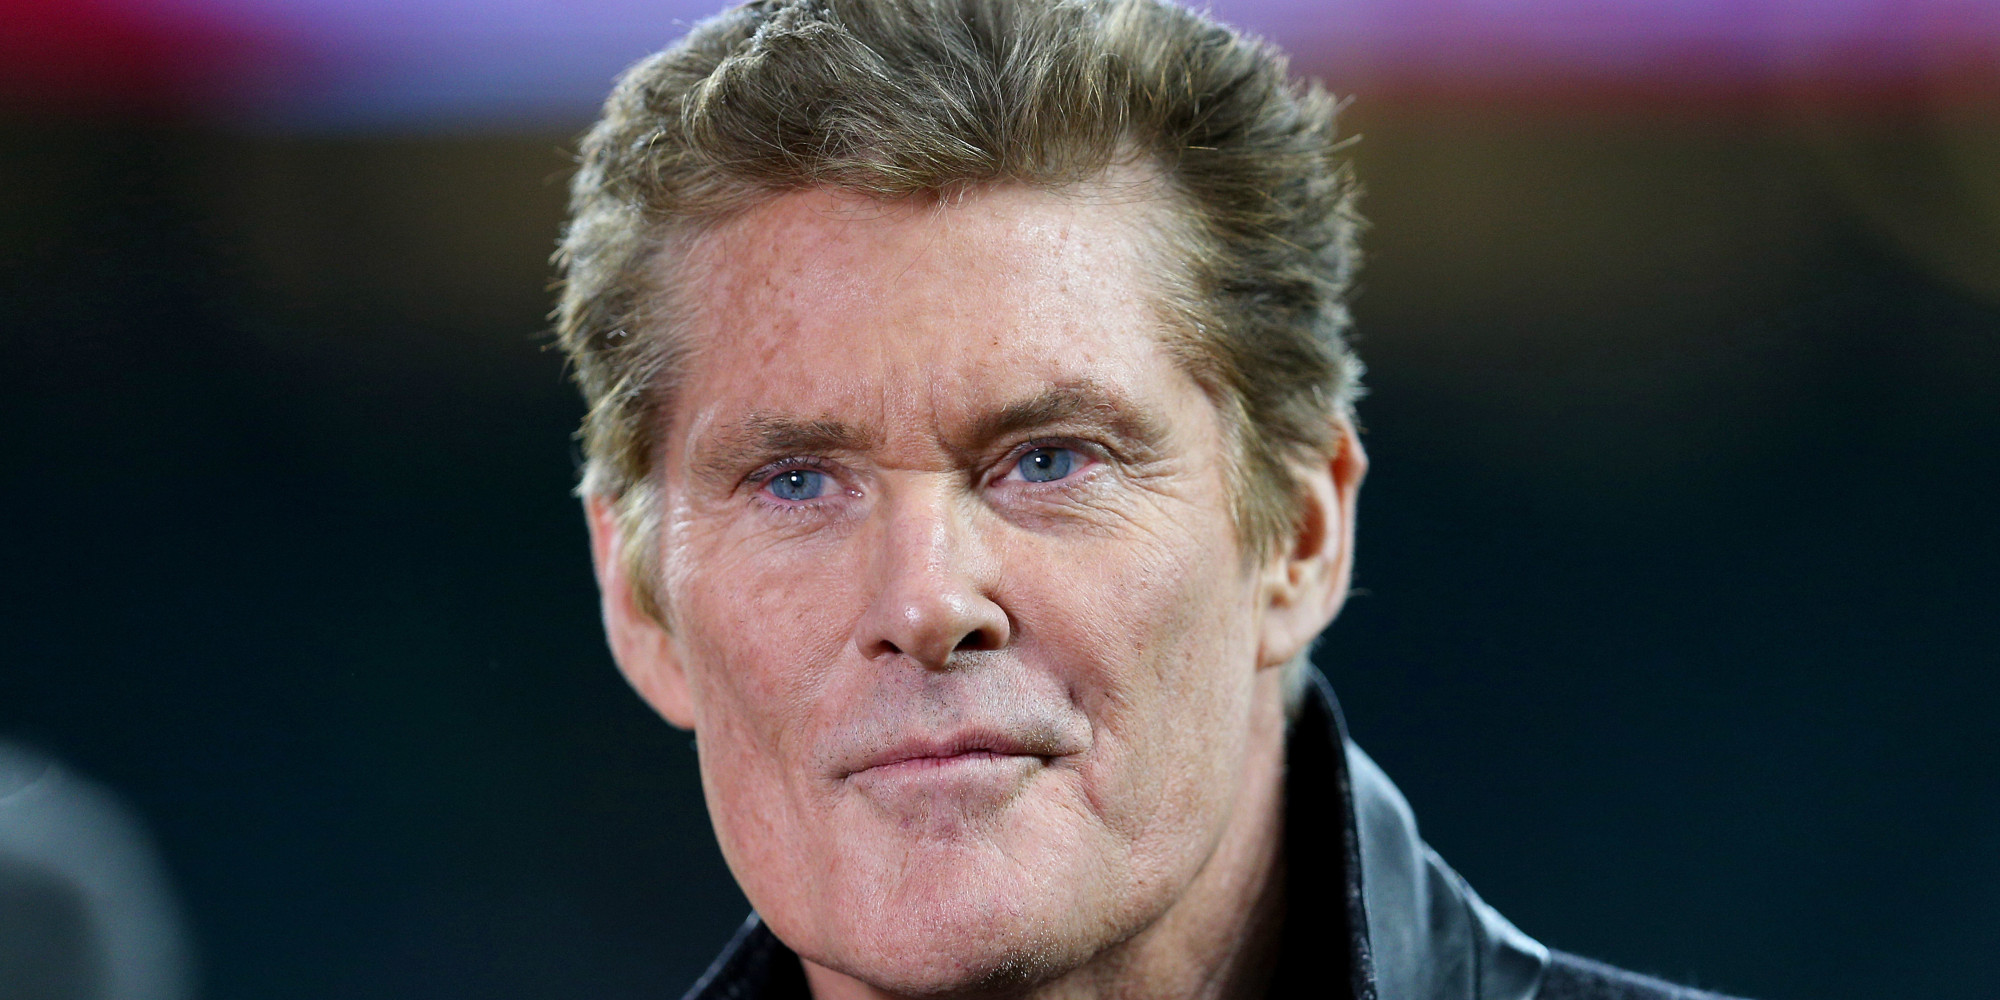 David Hasselhoff Changes Name By Deed Poll - He's Now Known As David ...